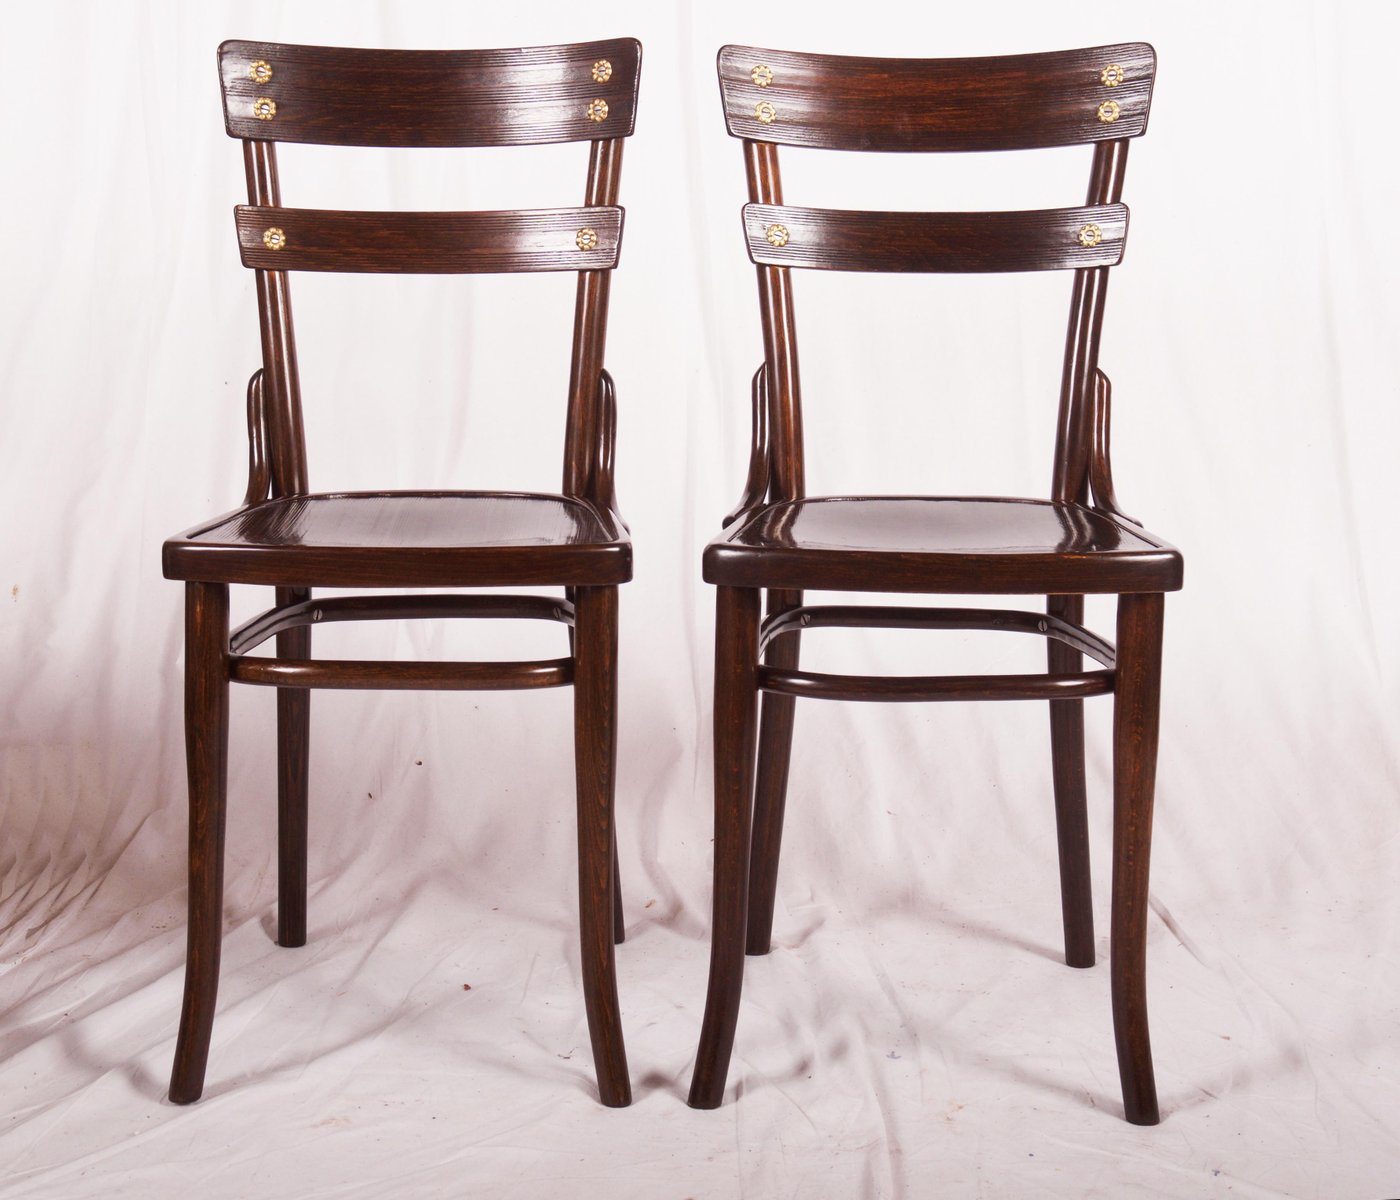 Room Chairs Antique Dining Room Chair 1900 For Sale At Pamono